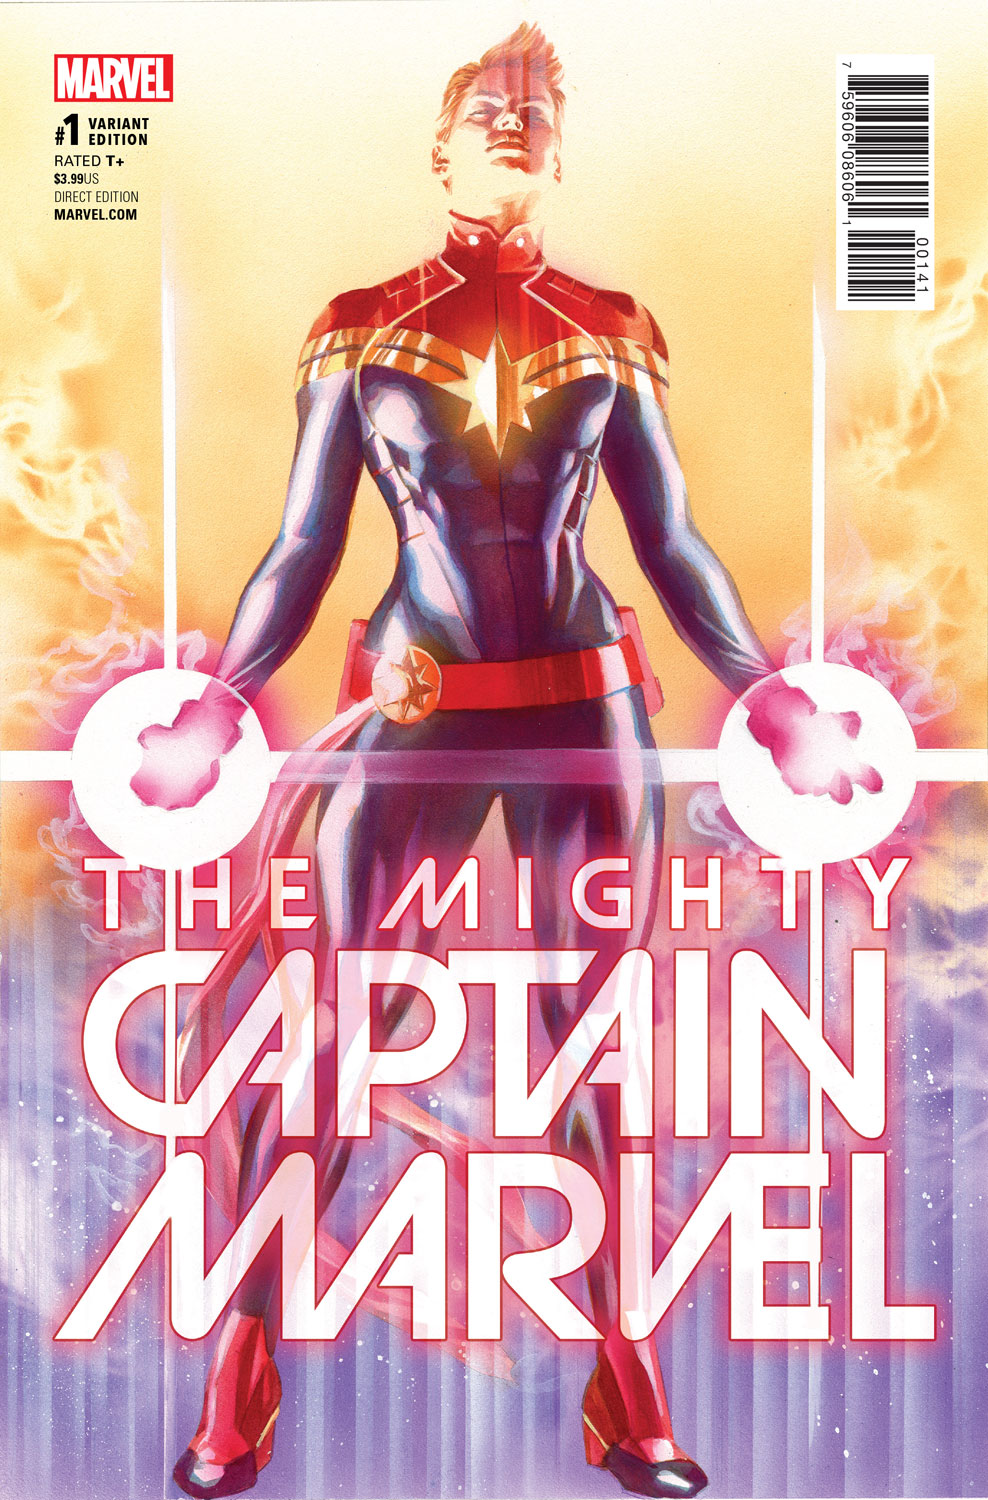 Marvel Comics News Digest 12/12 – 12/16/16 Featuring Venom Variants and Captain Marvel